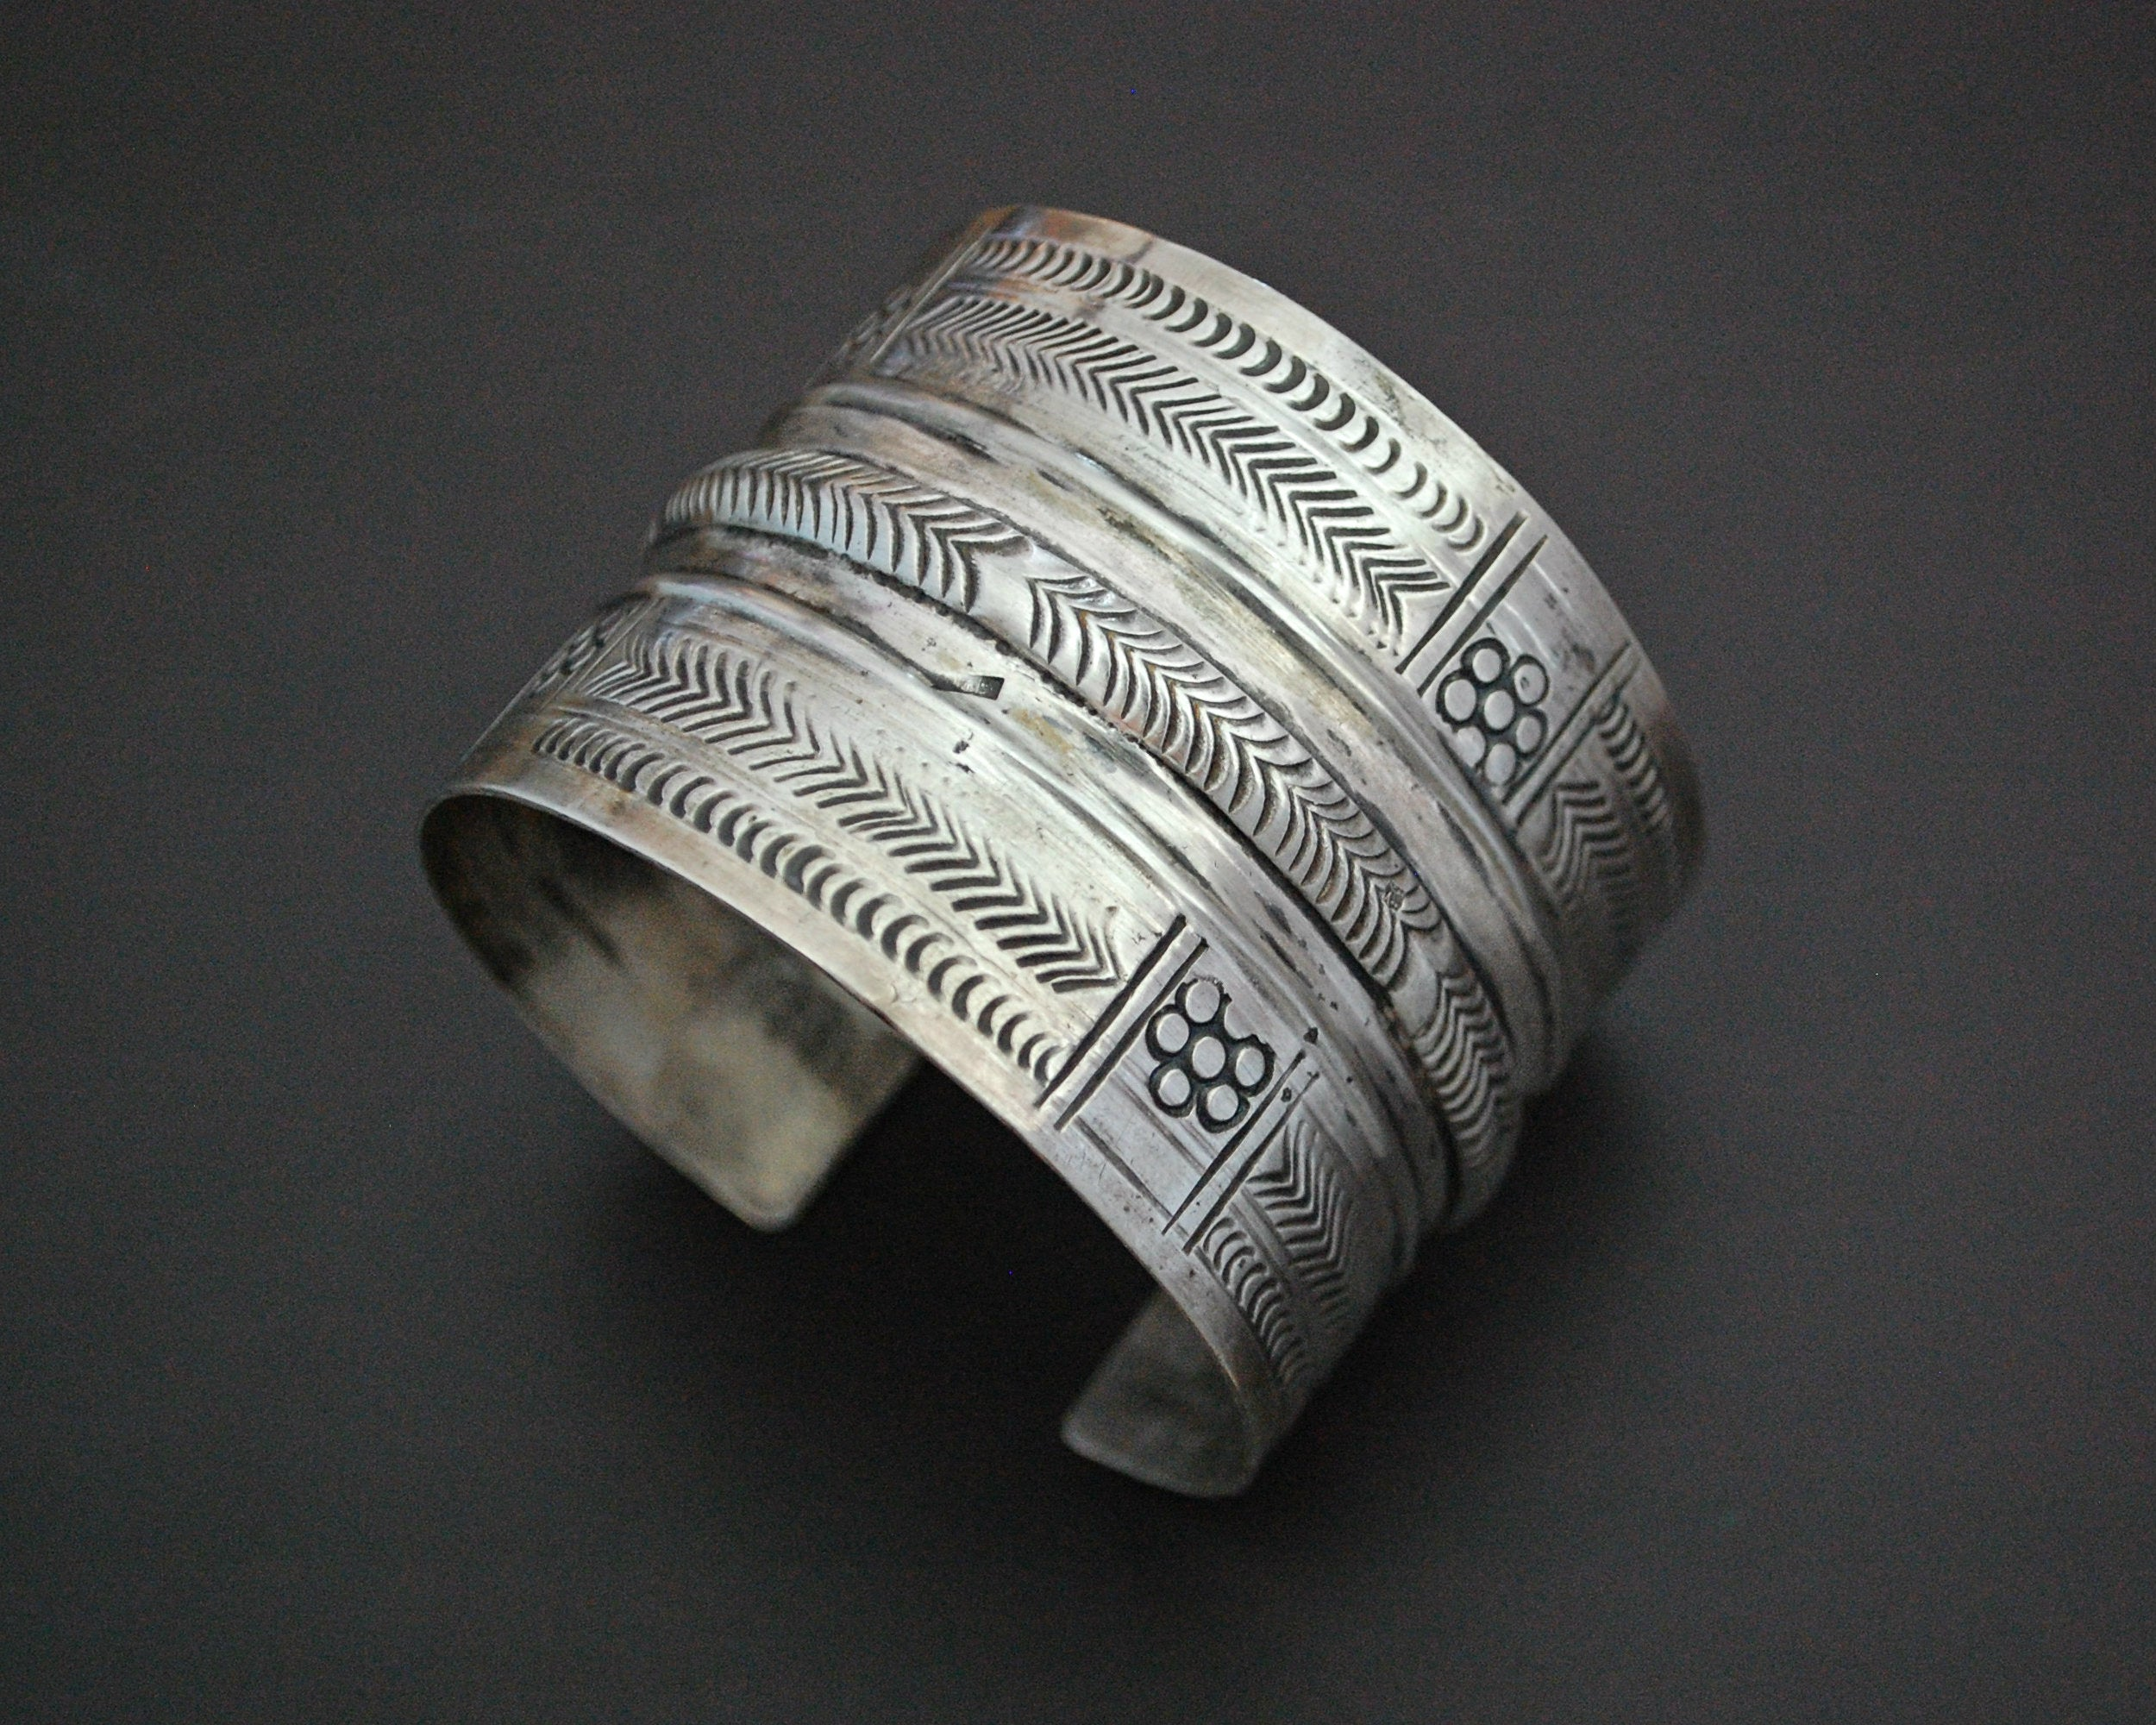 Bedouin Siwa Bracelet from Egypt